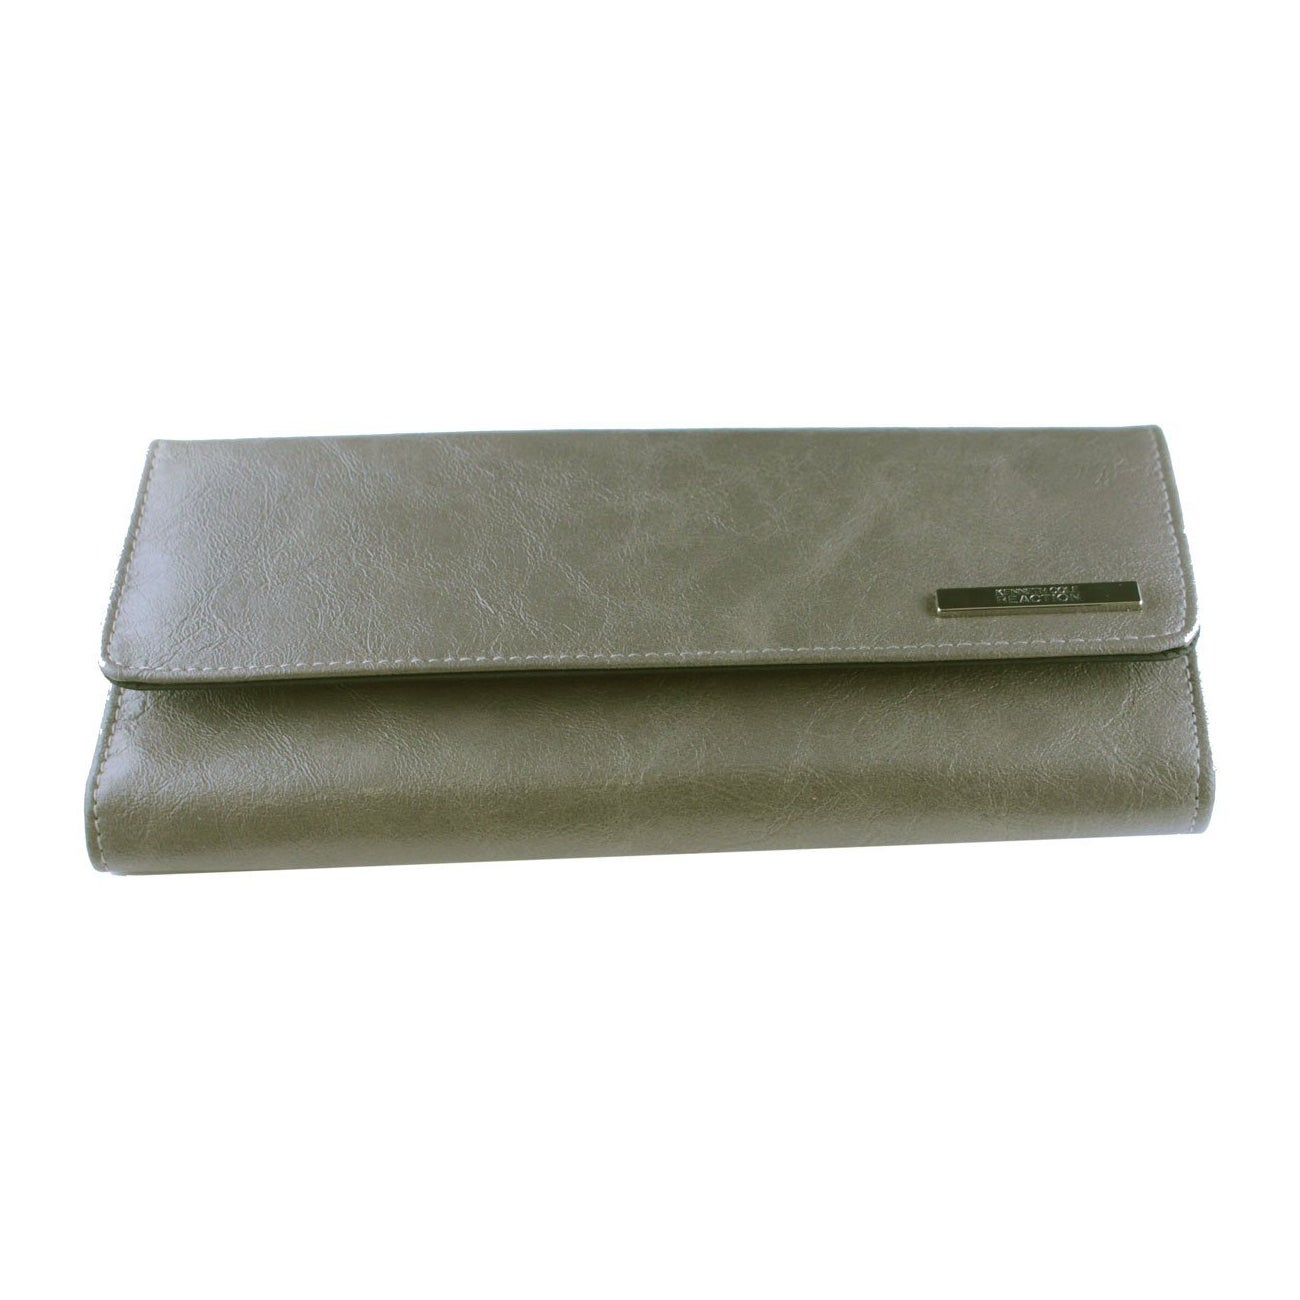 Kenneth Cole Reaction Tri Me A River Trifold Elongated Clutch - Stone